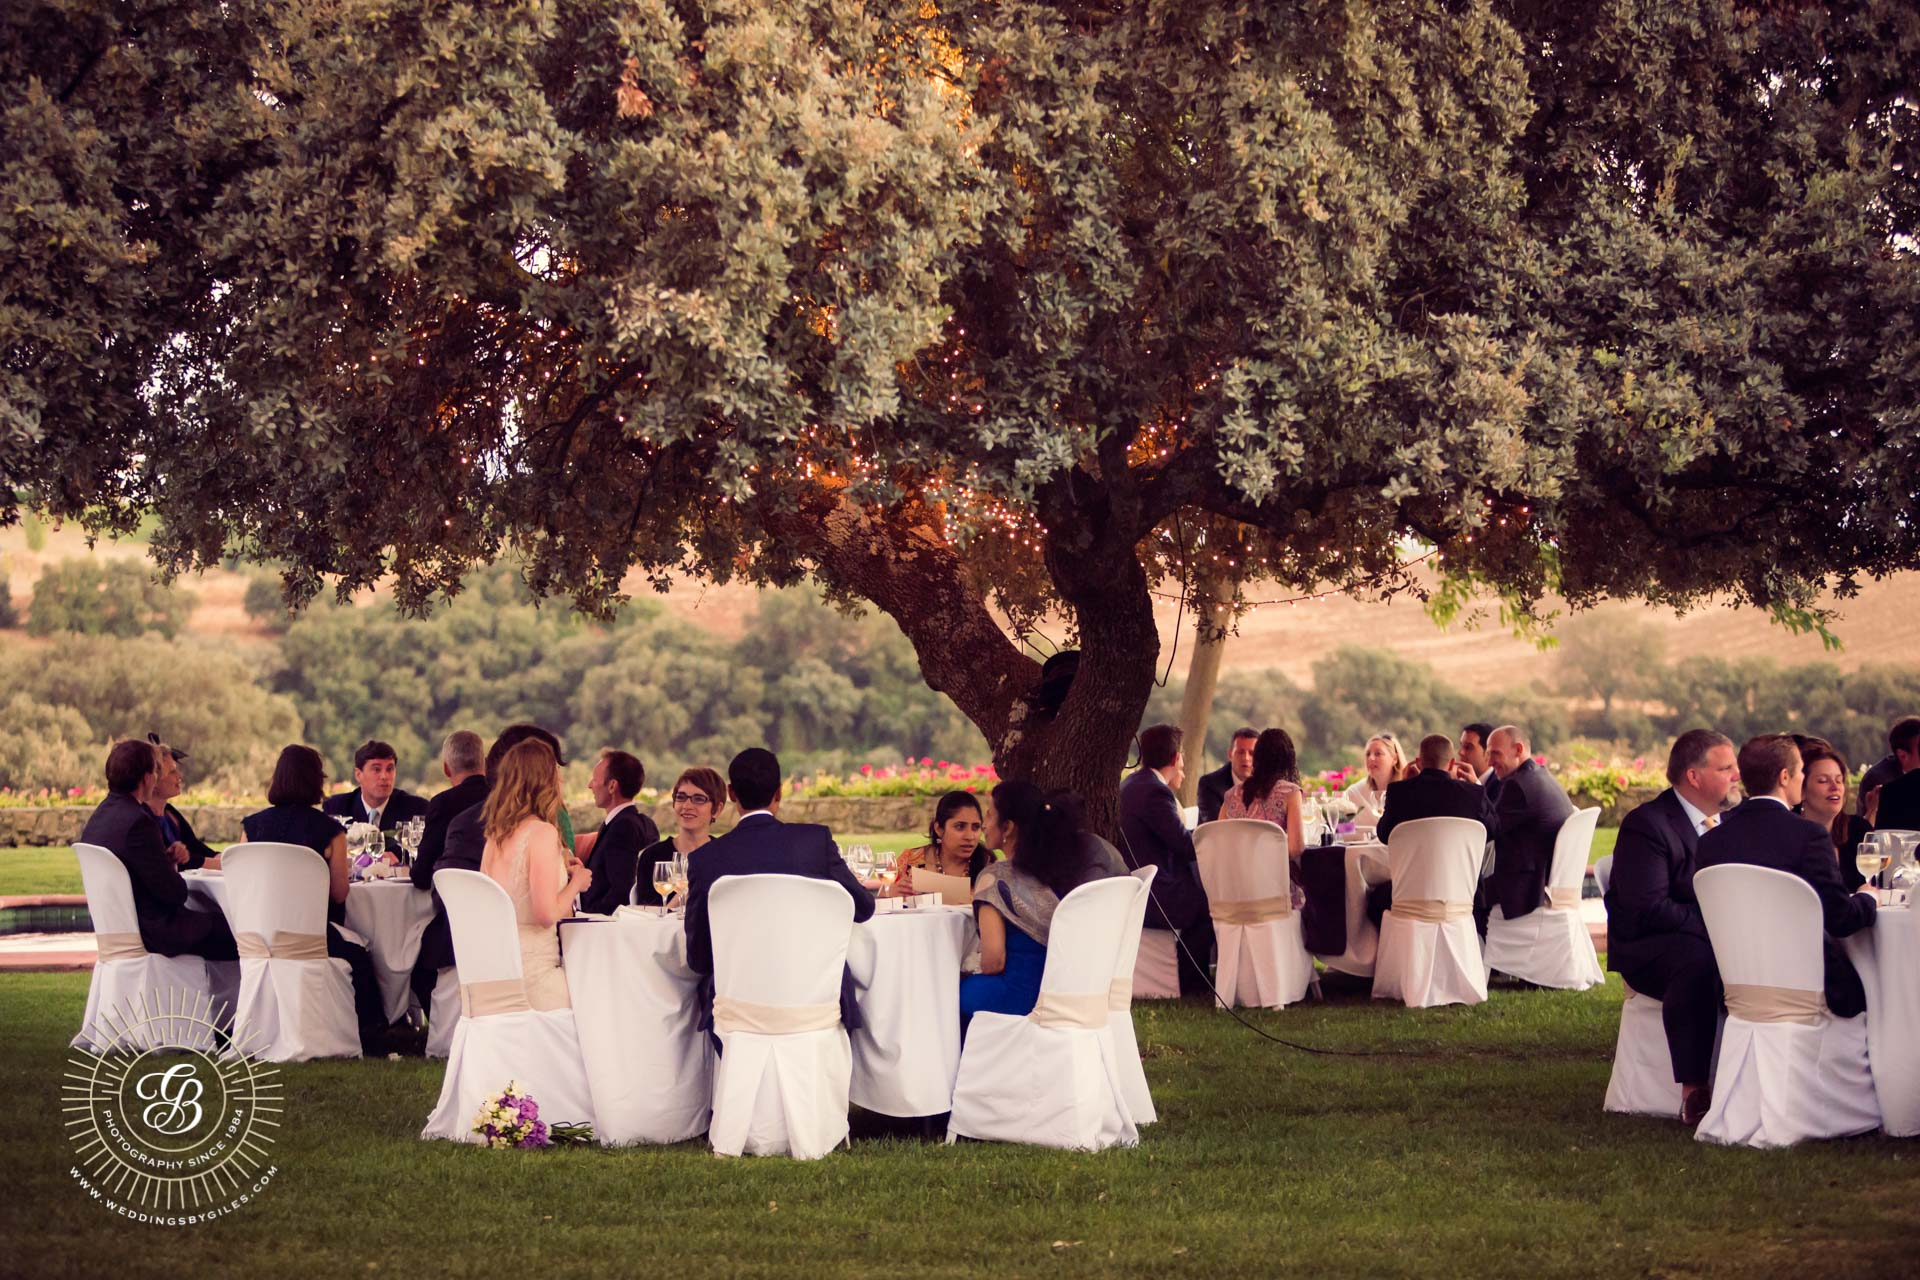 wedding dinner under a tree in spain